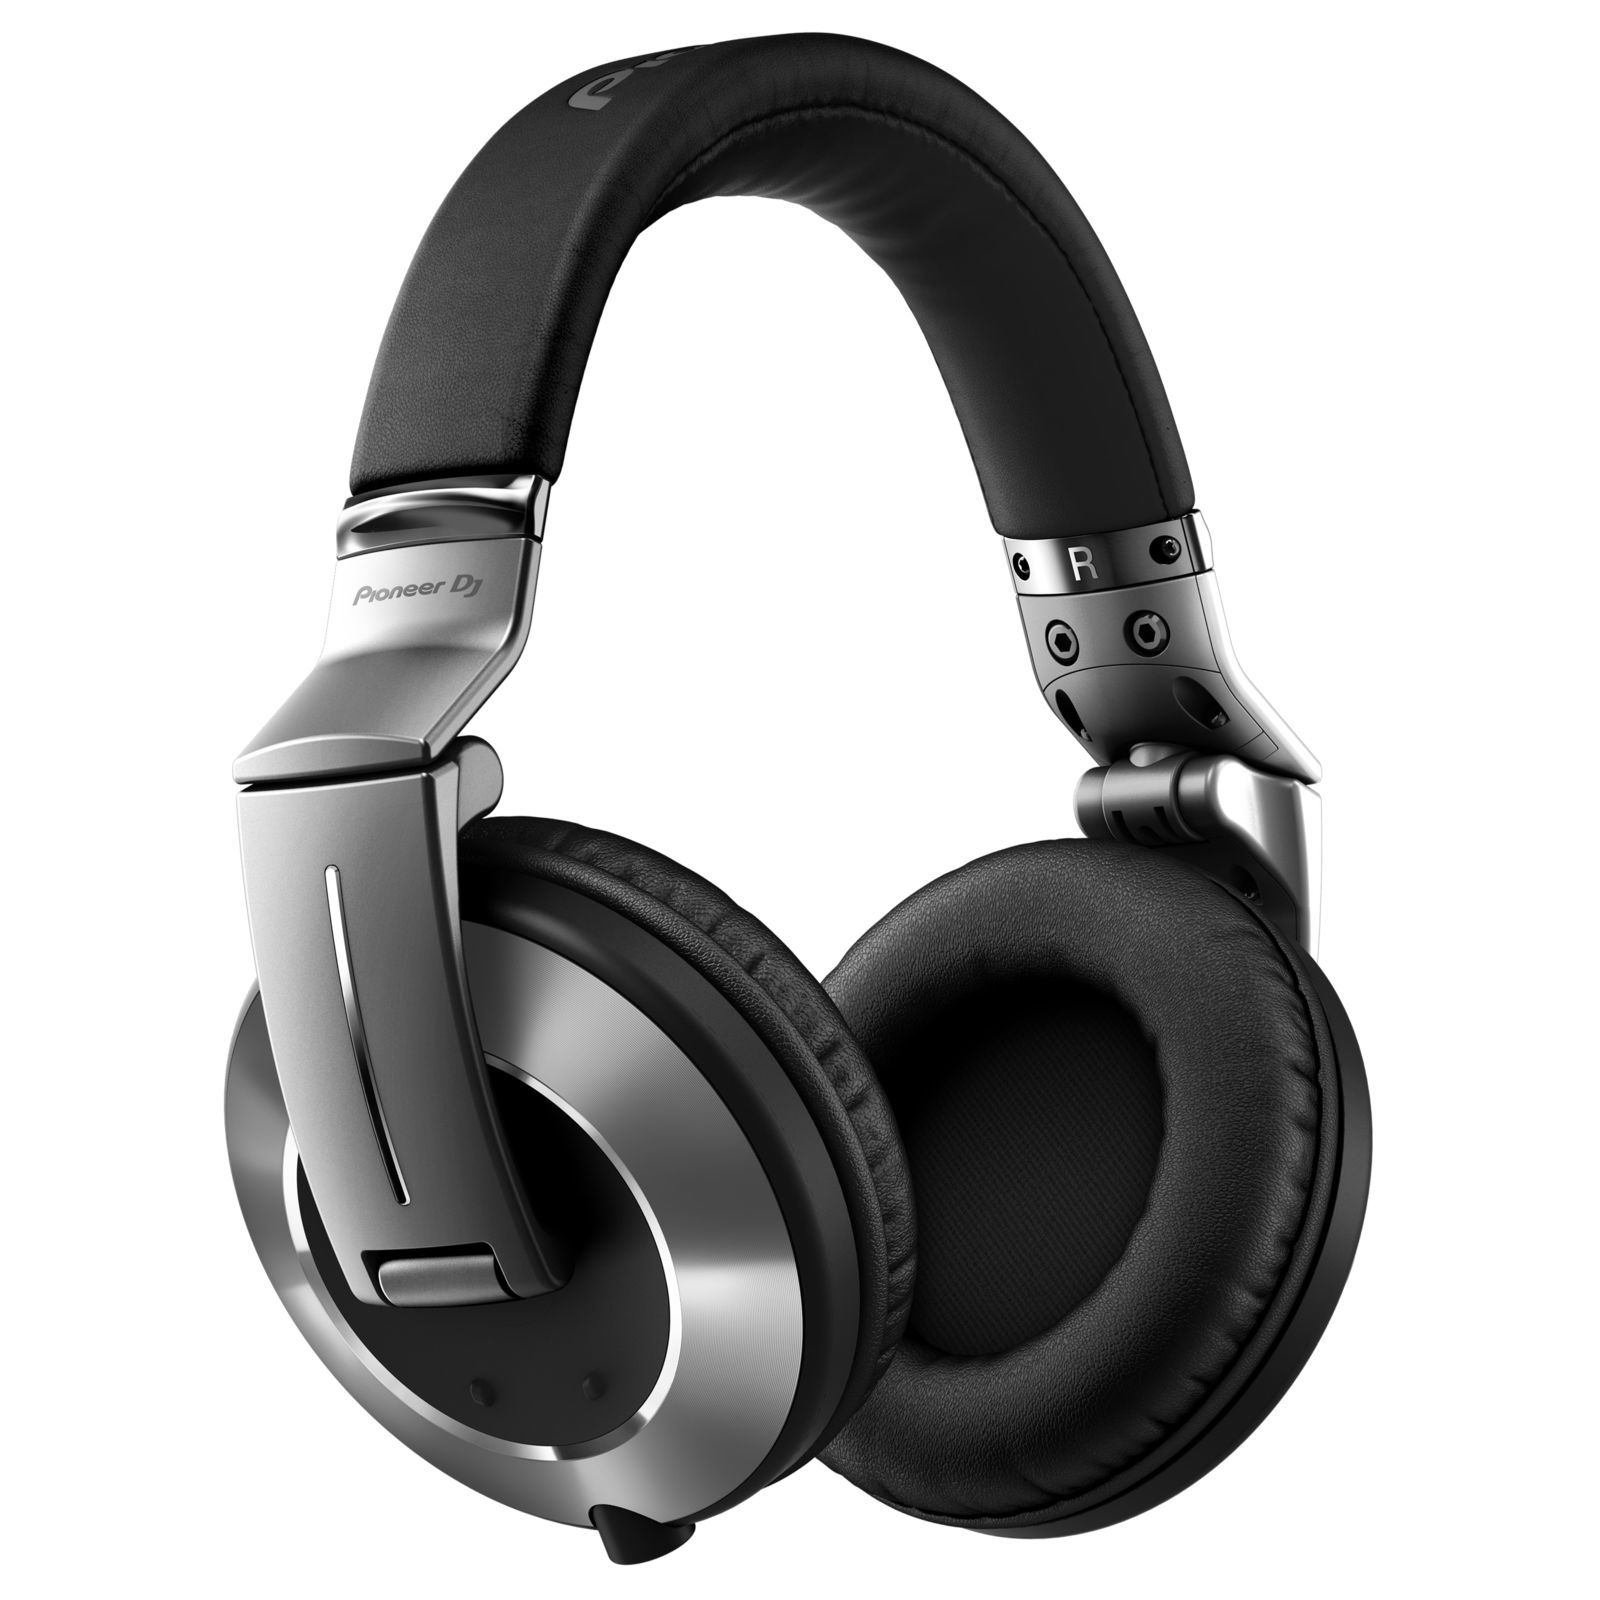 Pioneer DJ HDJ-2000MK2-S High-End DJ Headphones, silber Product Image